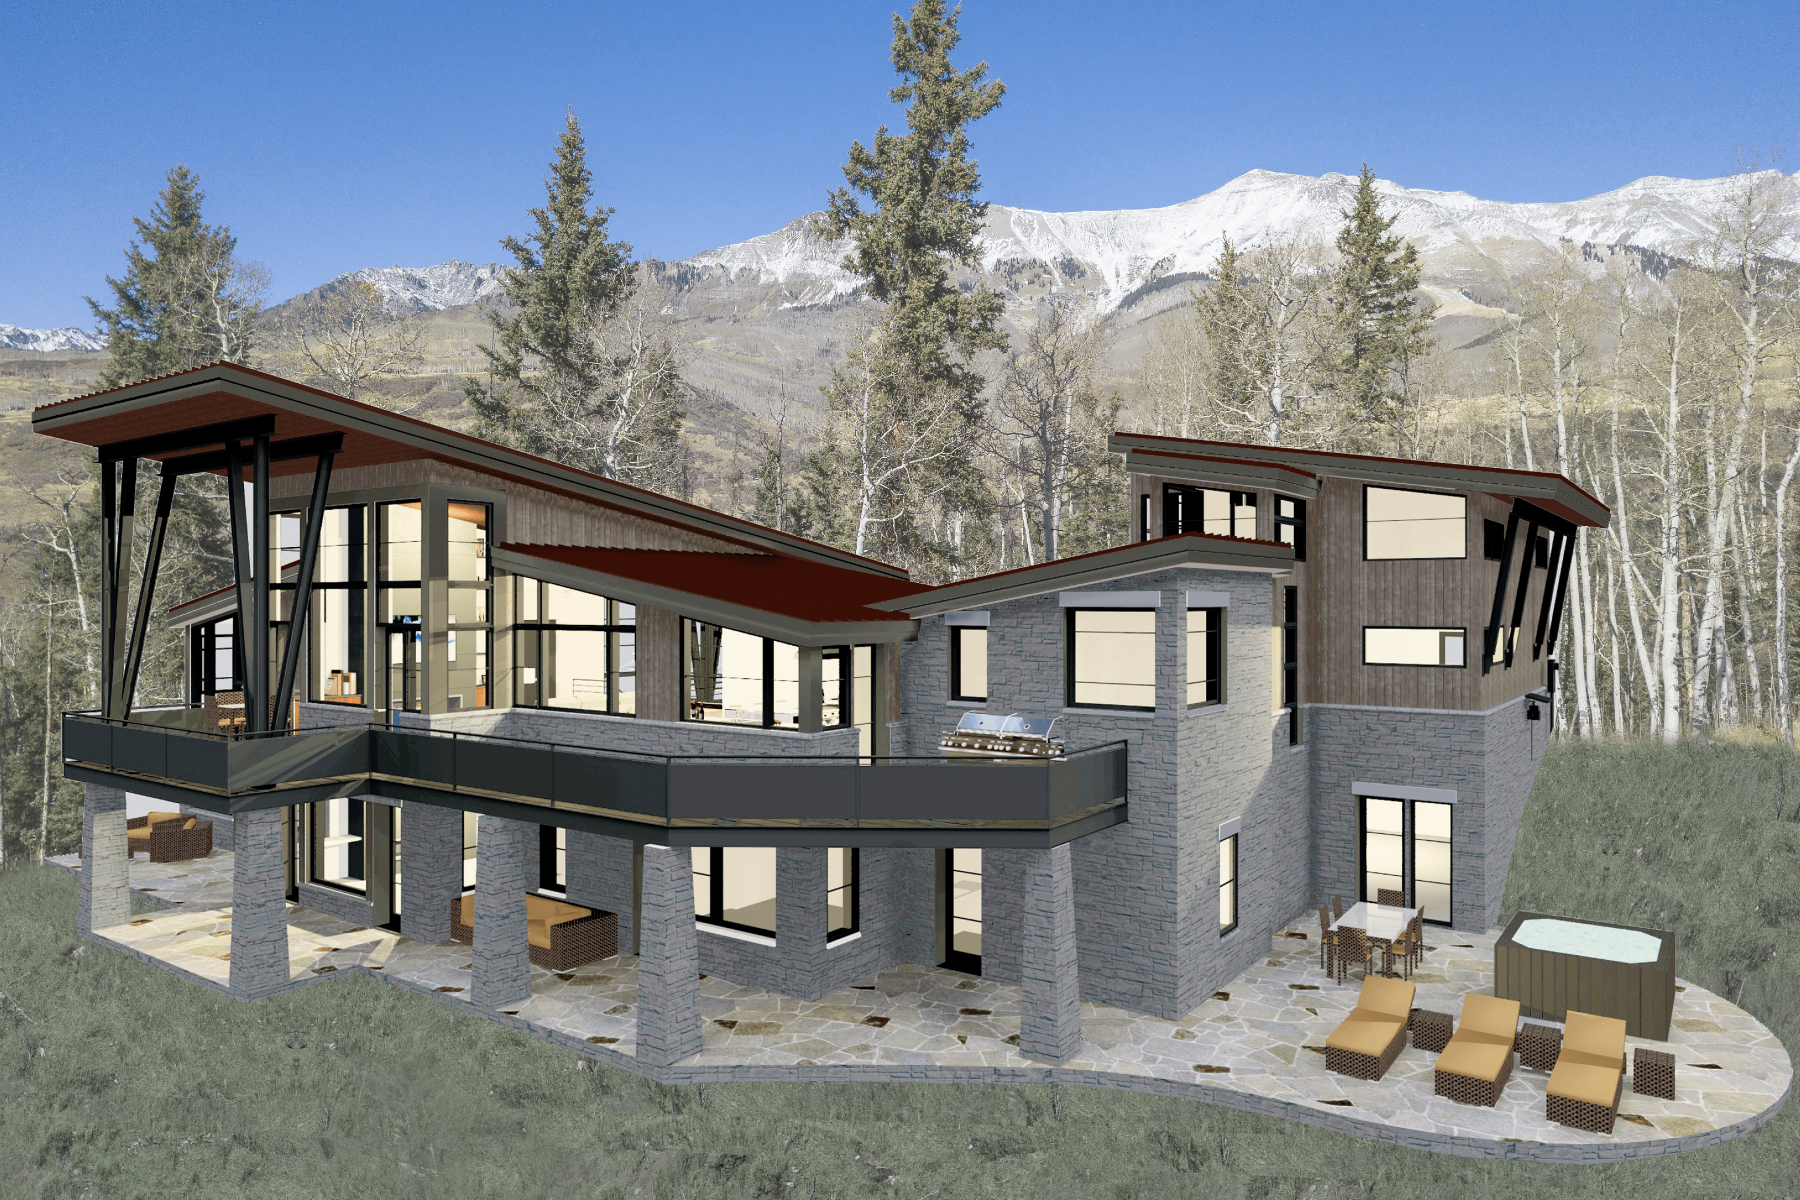 Single Family Homes for Sale at 105 Lawson Overlook Mountain Village, Colorado 81435 United States